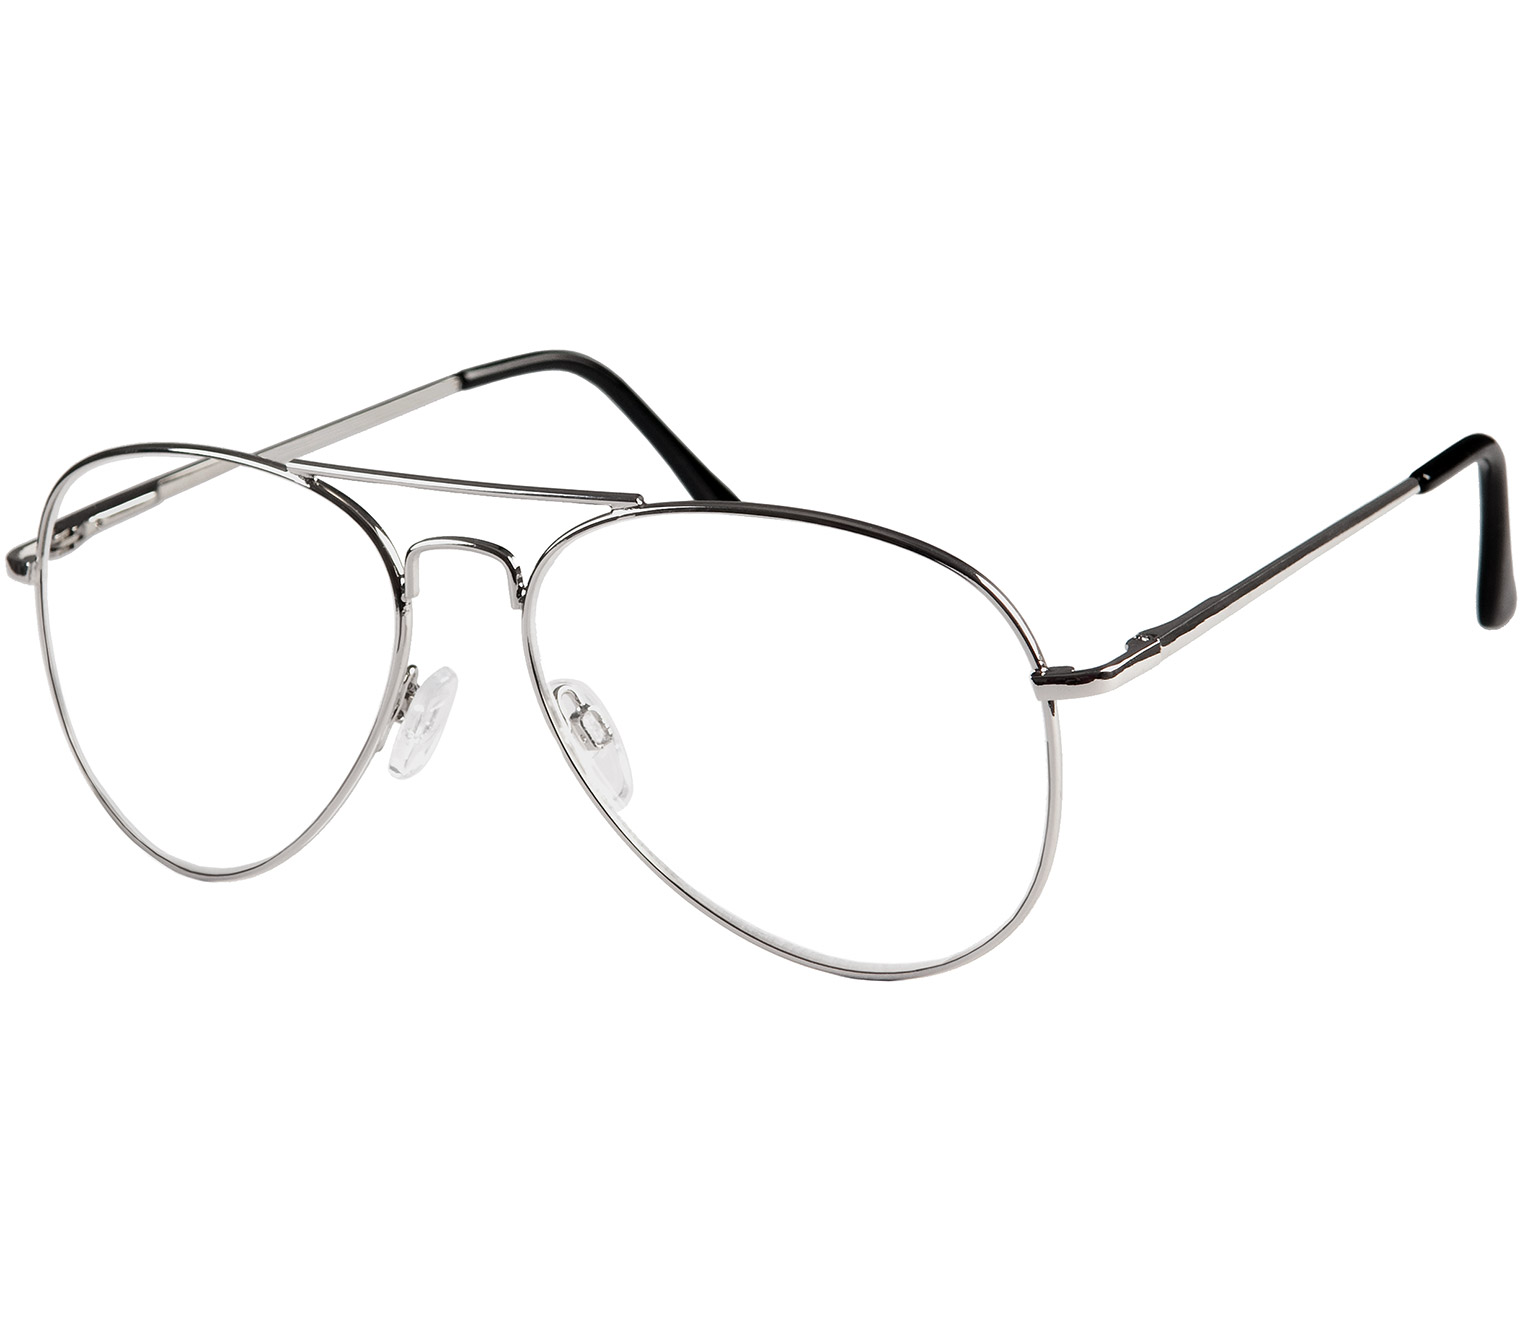 Main Image (Angle) - Bailey (Silver) Classic Reading Glasses